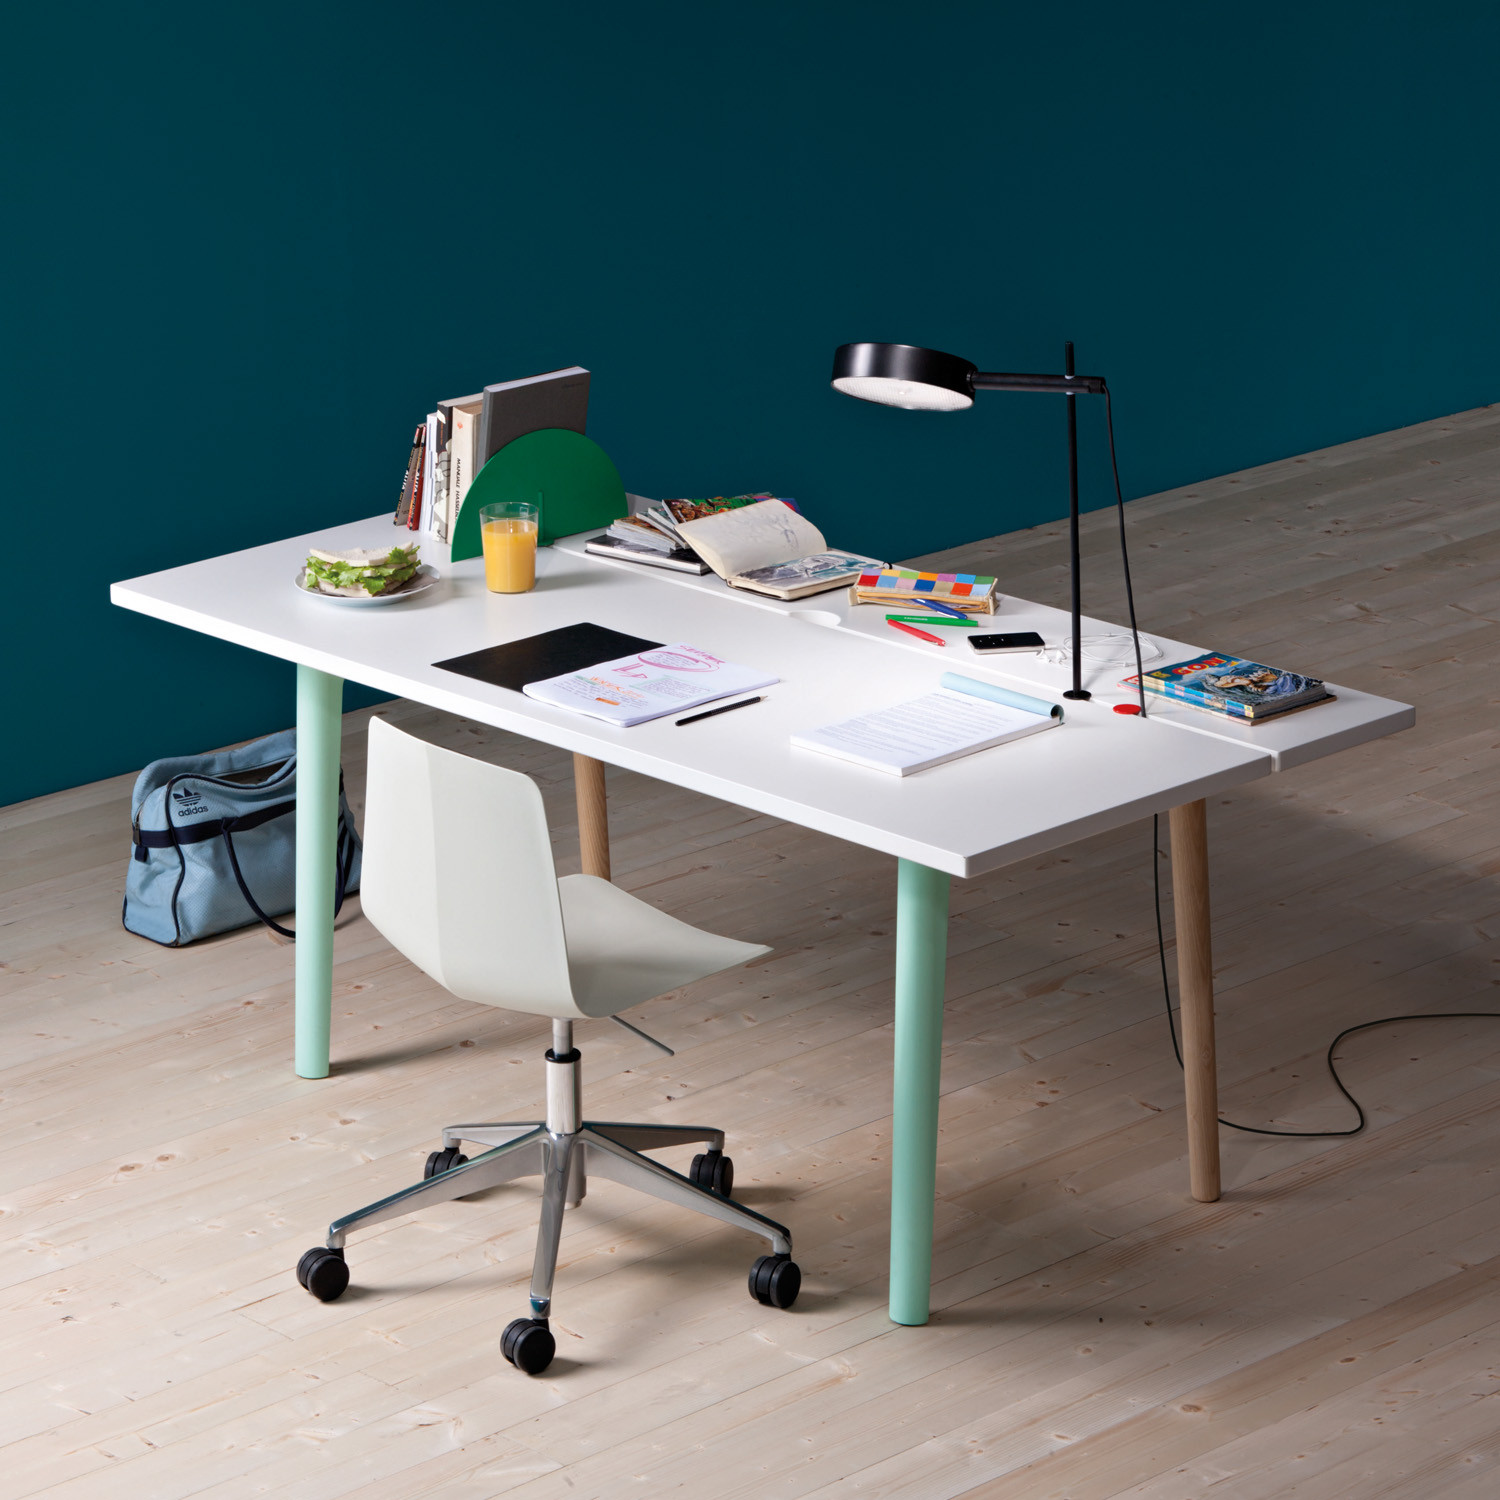 MaxDesign Offset Work Table